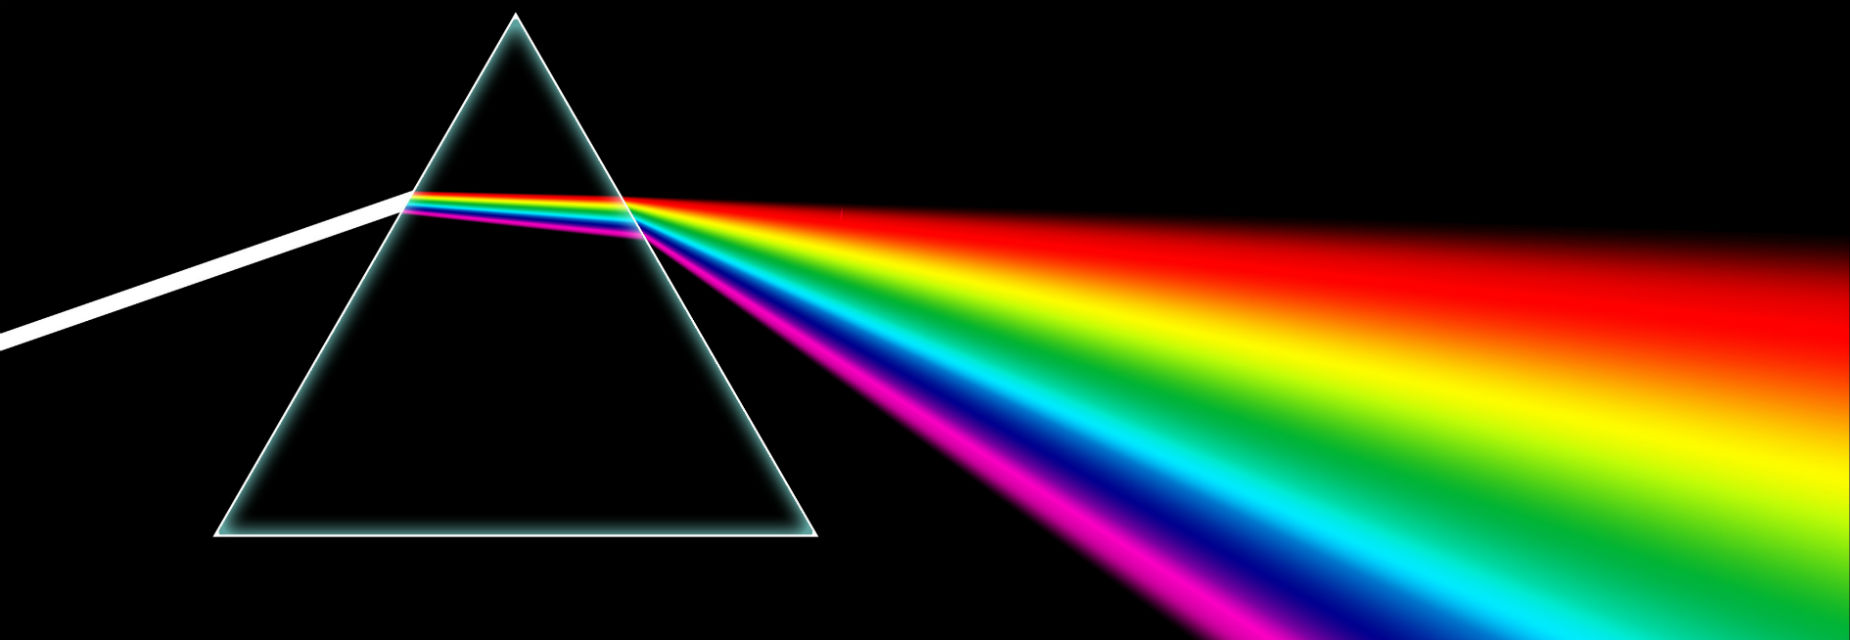 Dark Side of the Moon prism